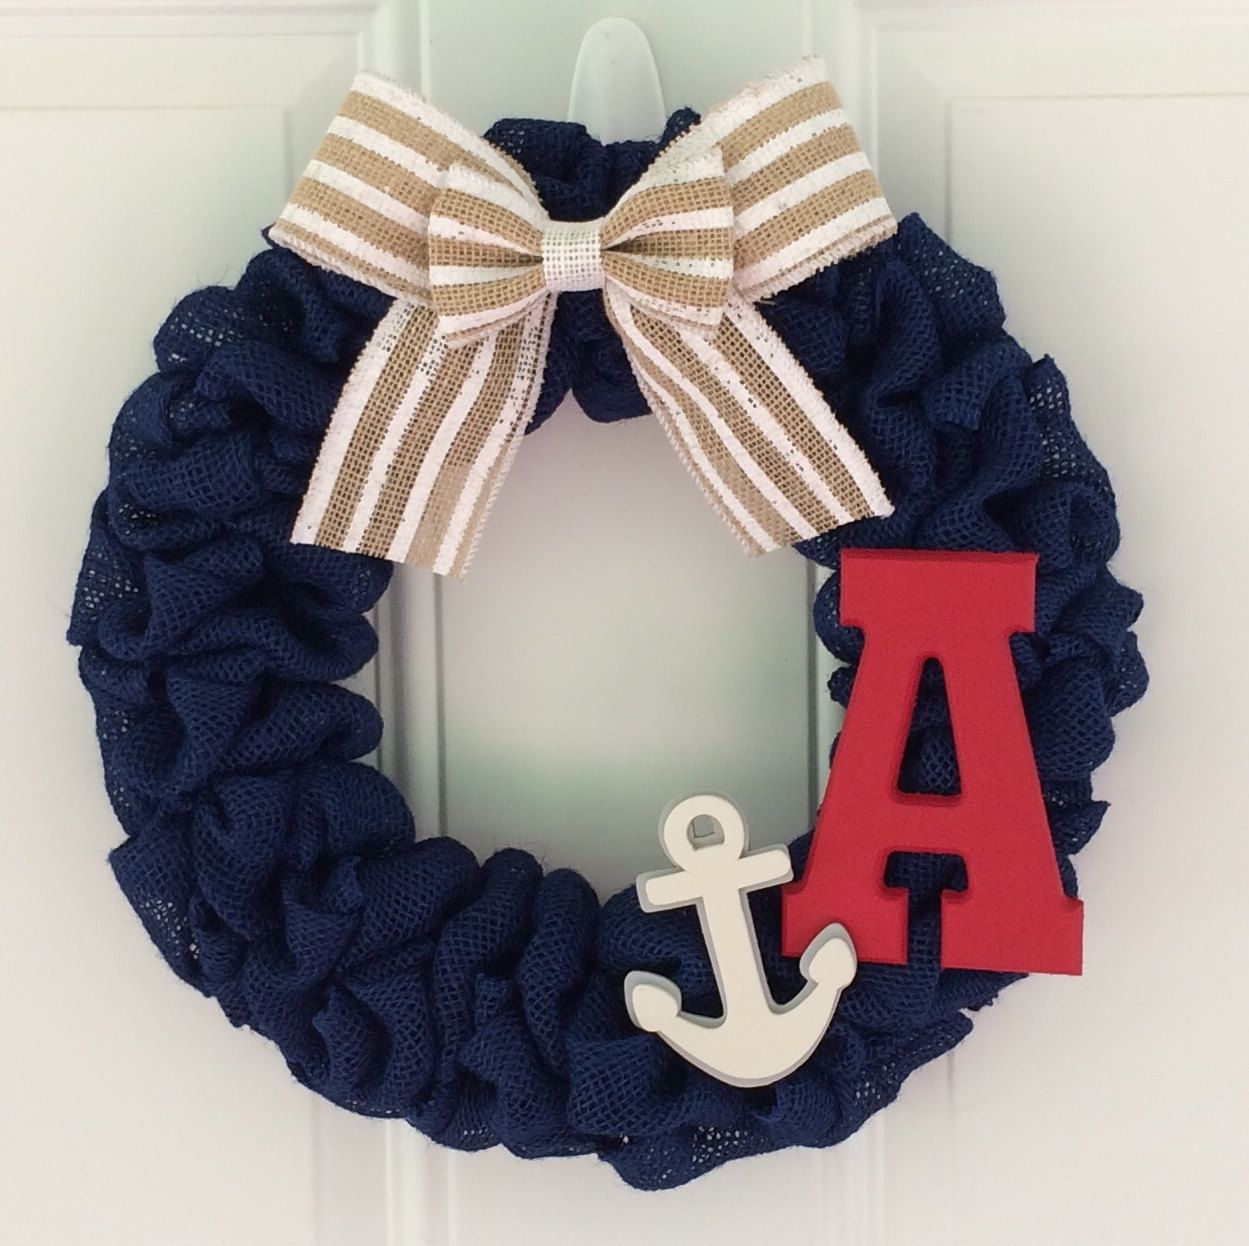 Burlap Wreath With Burlap Striped Bow Initial Anchor